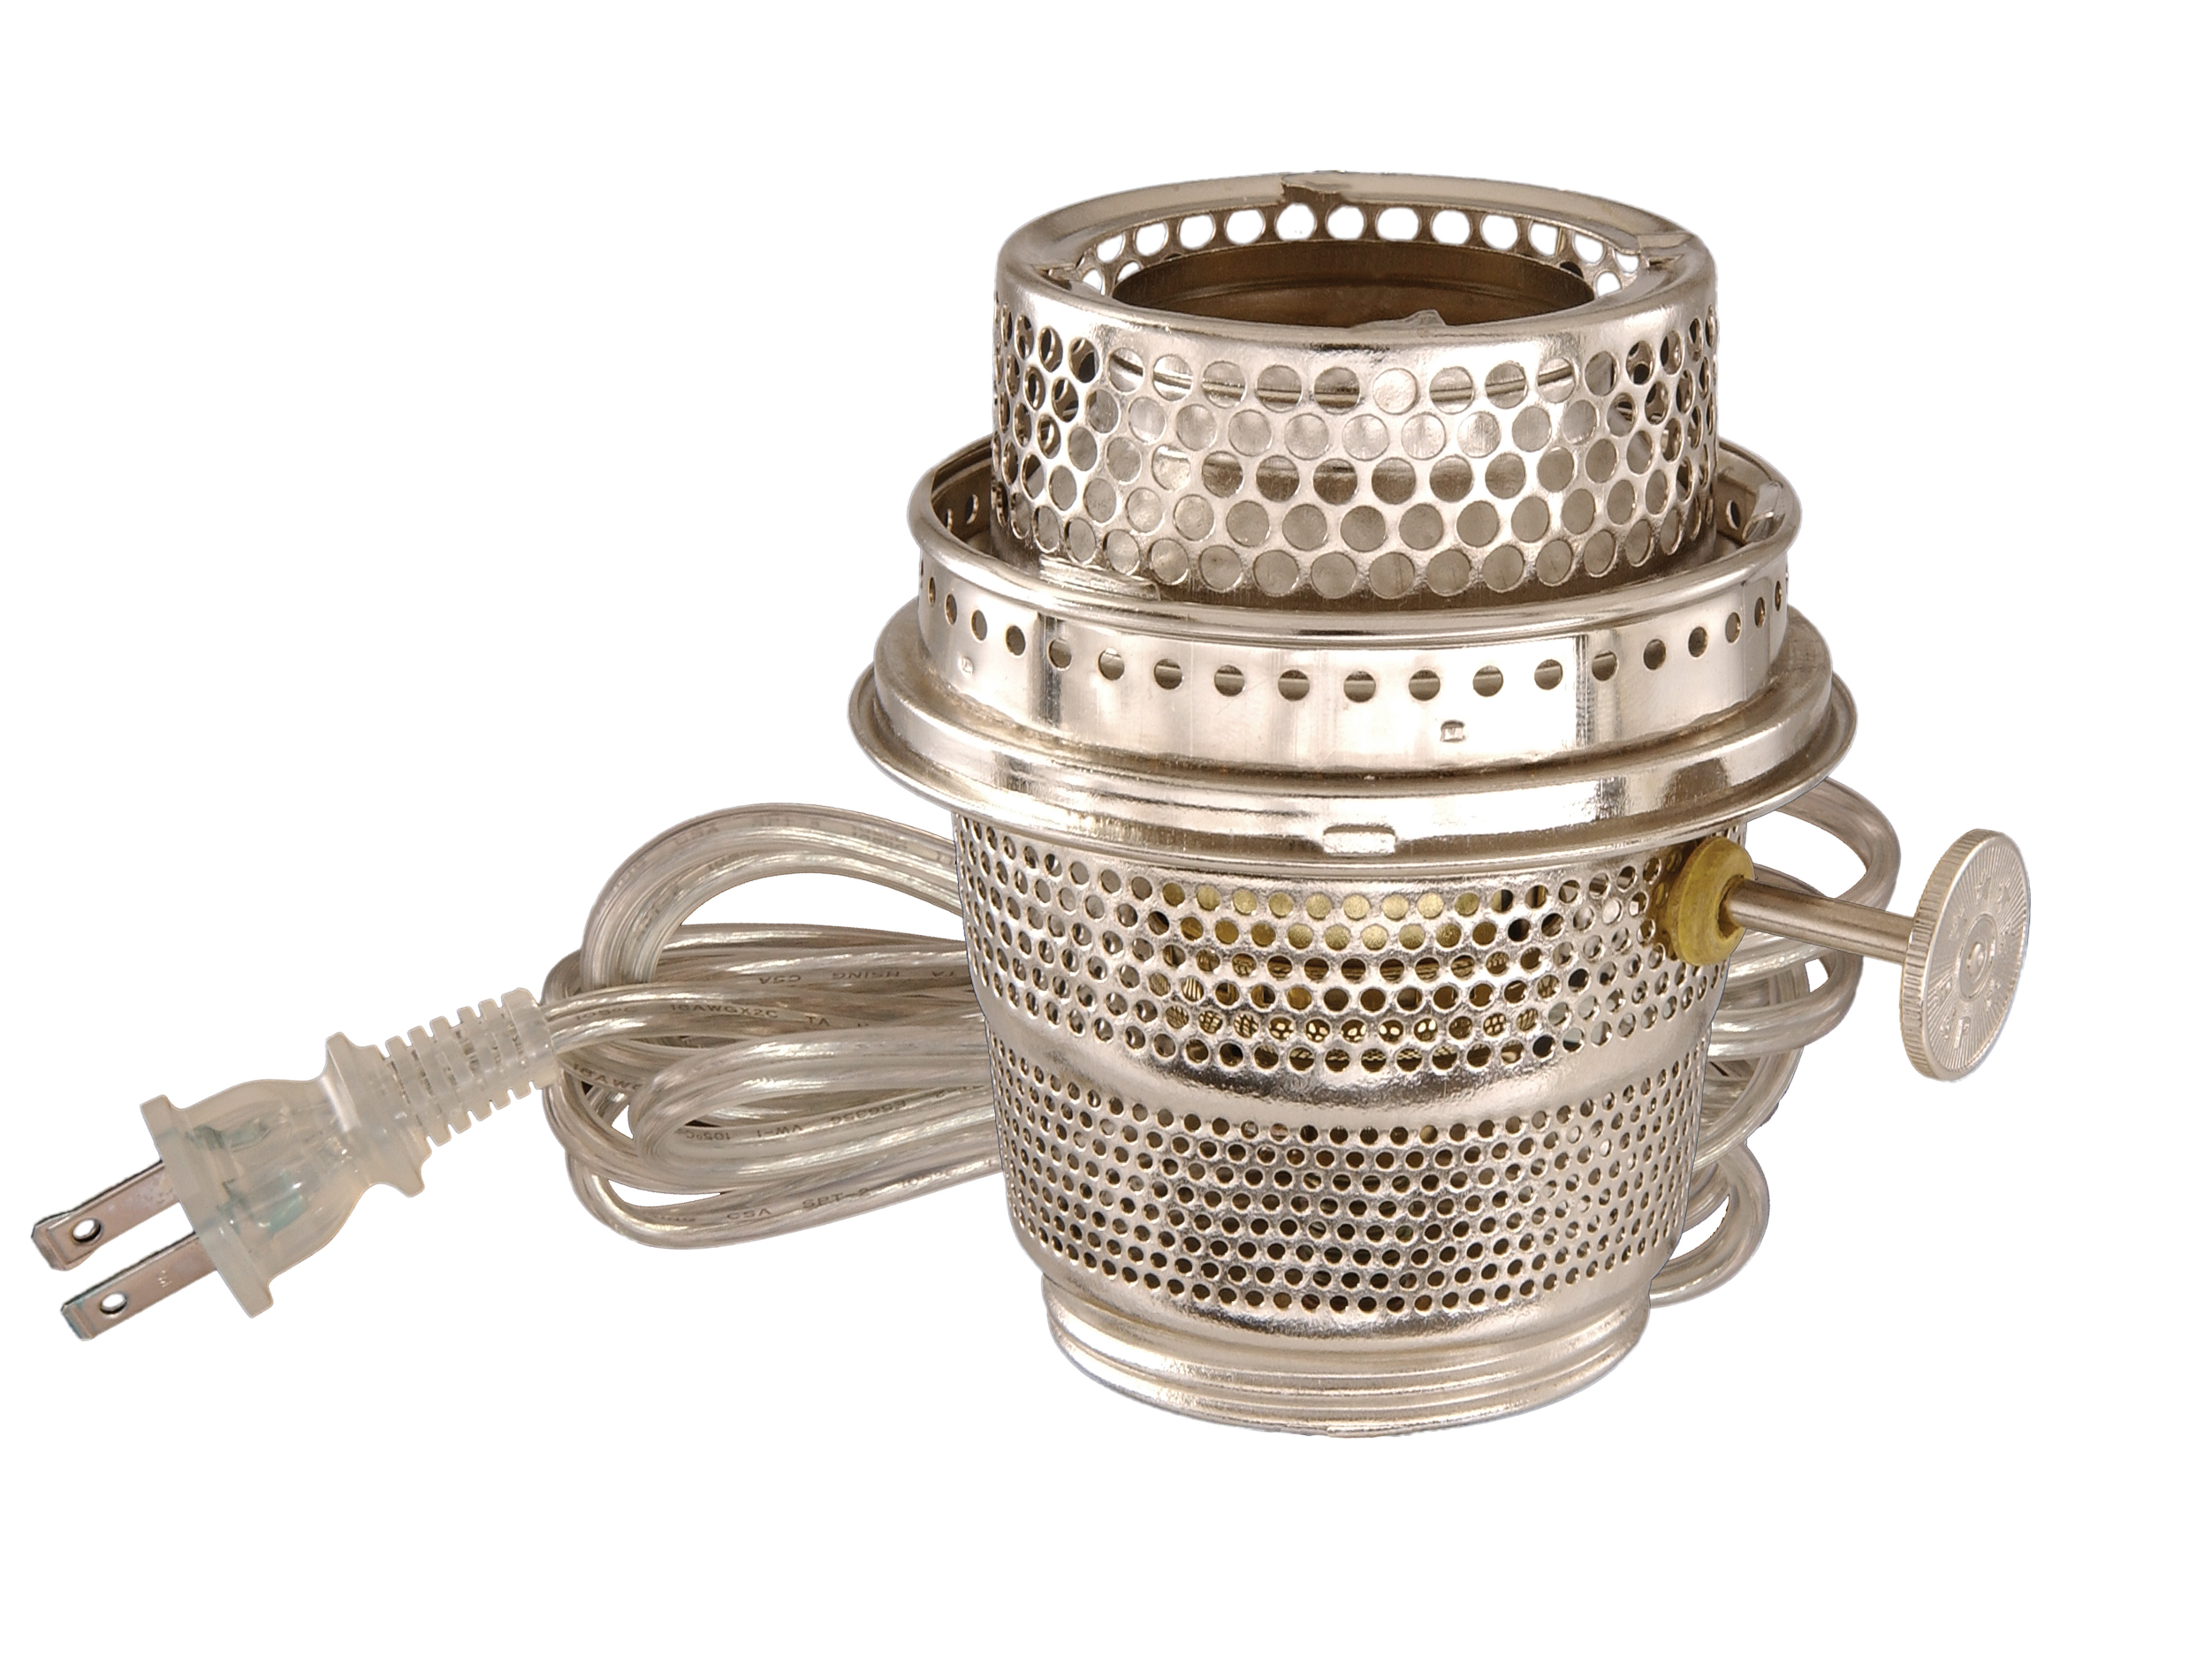 Early Style Nickel Plated Electrified Burner Designed To Fit Aladdin Brand  Lamp Models A, B, C, 21, 21C, U0026 23 And All Glass Models*.